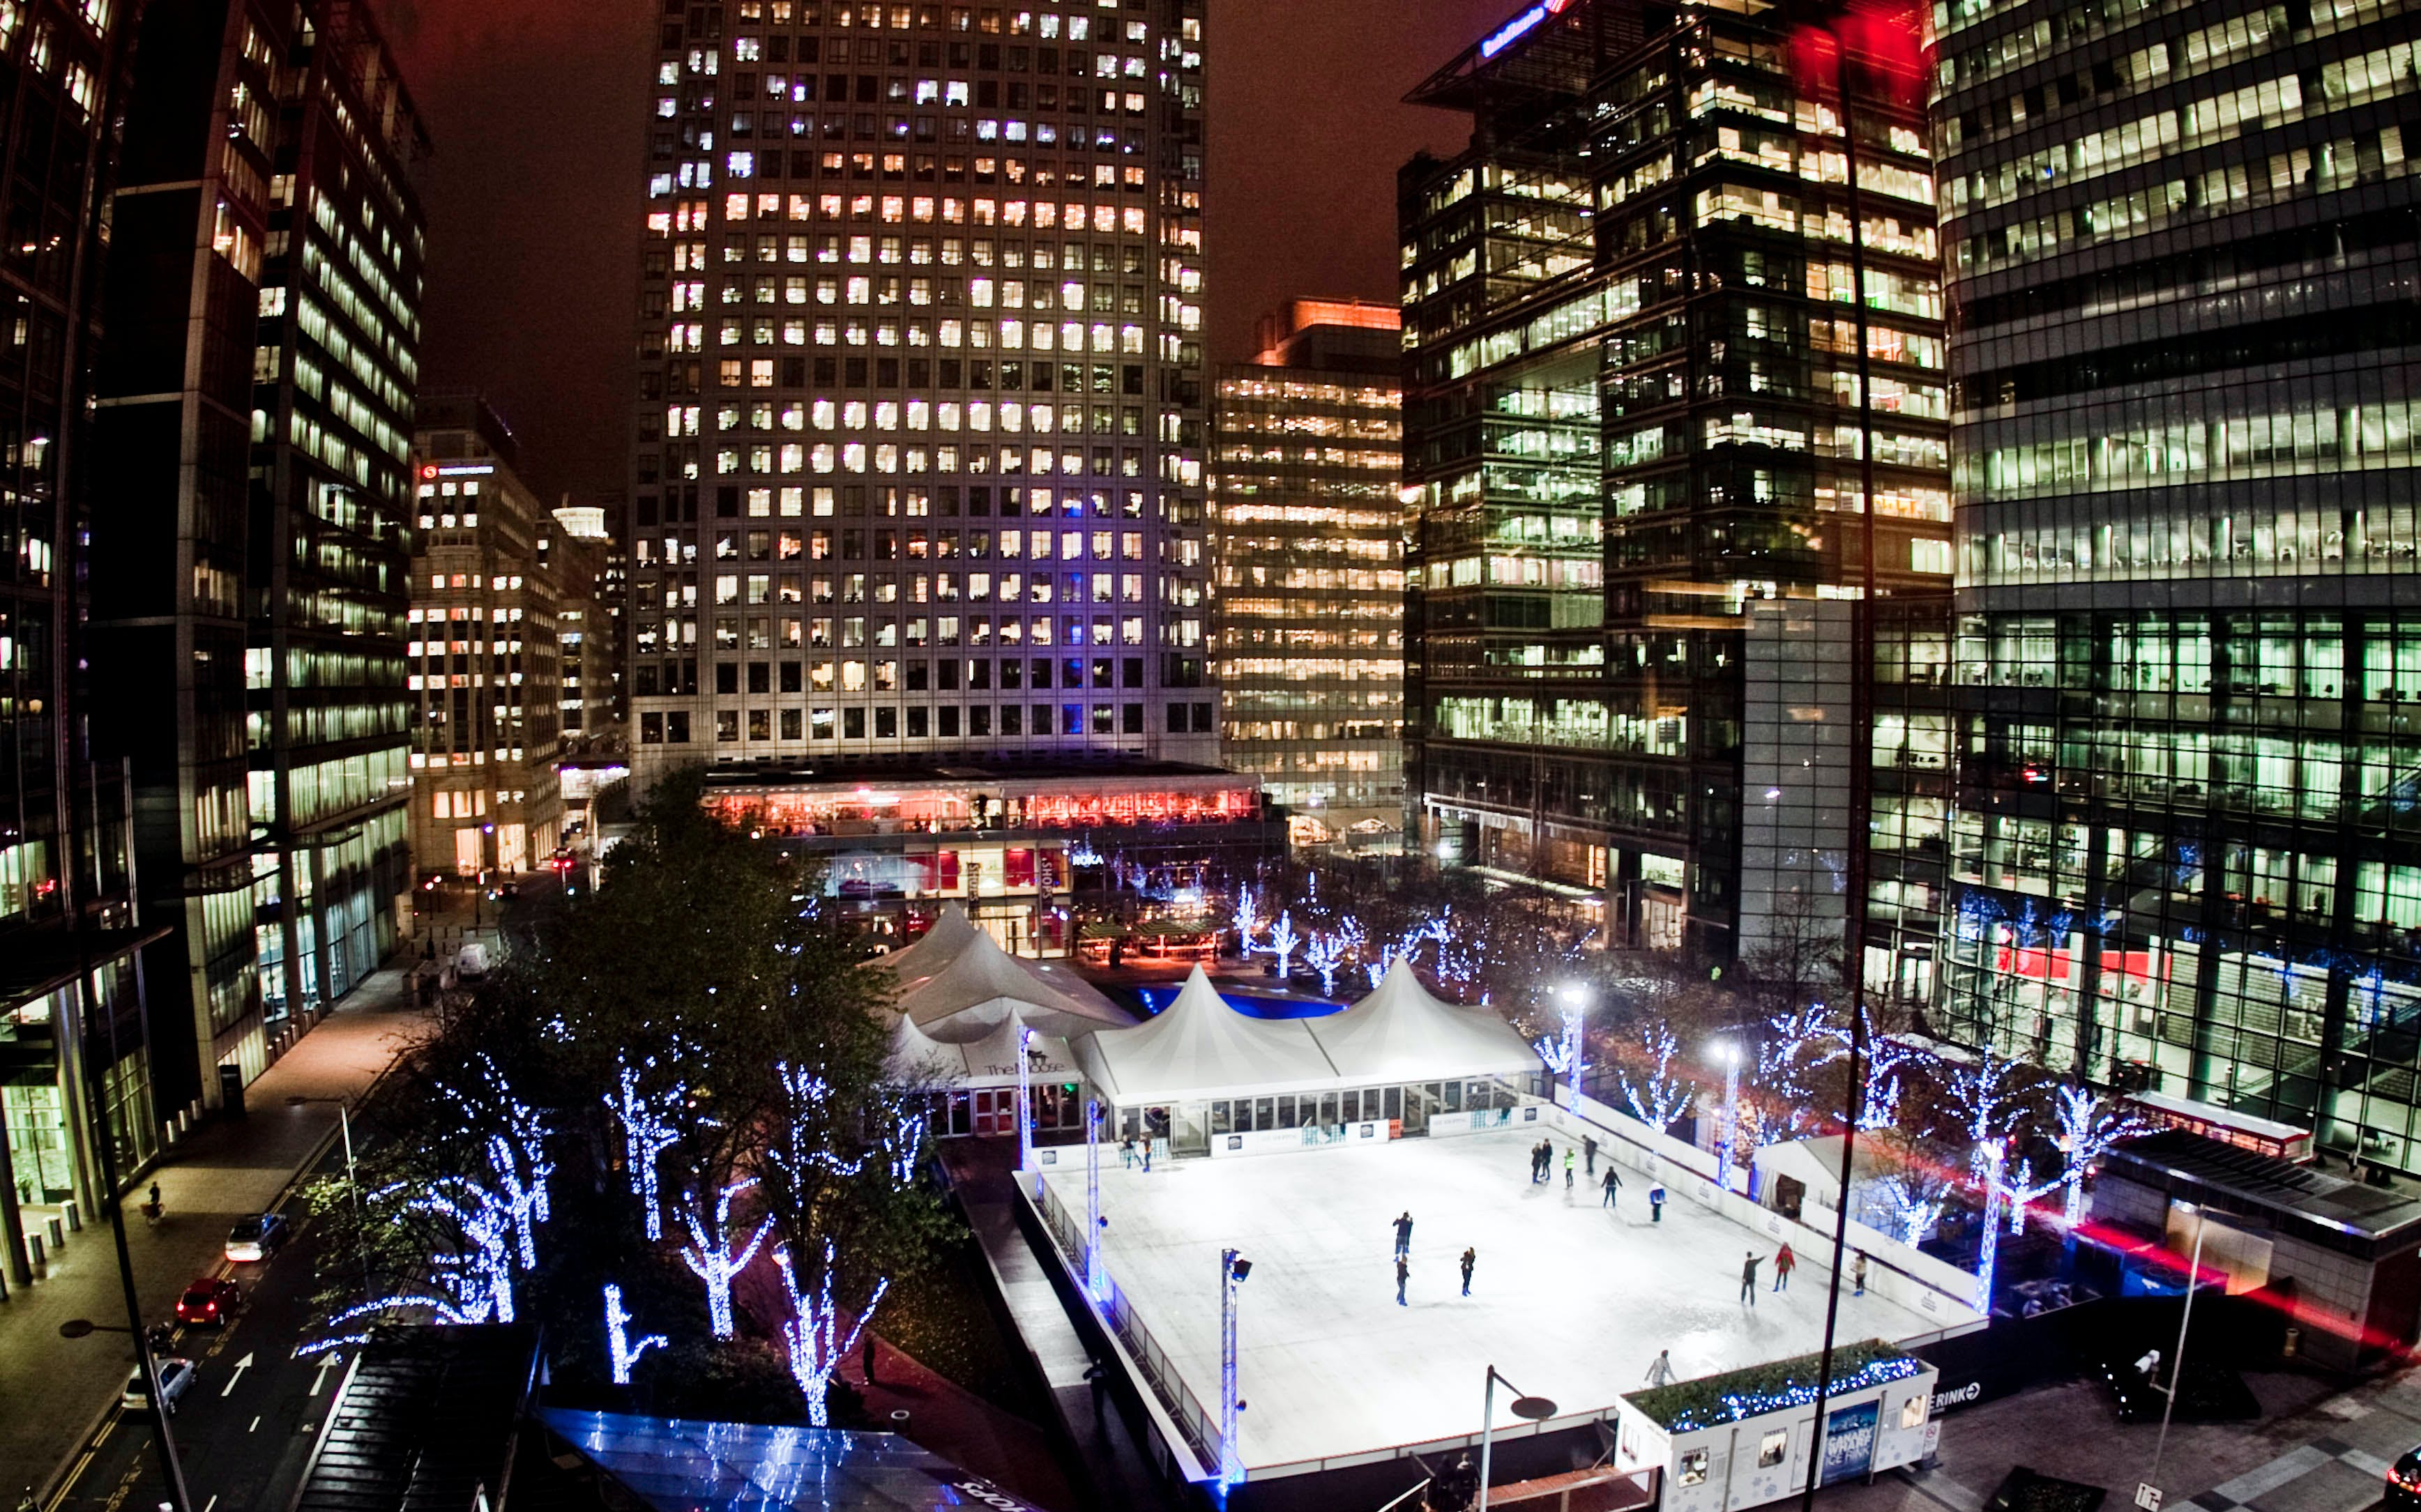 Christmas Magic at the Canary Wharf Ice Rink